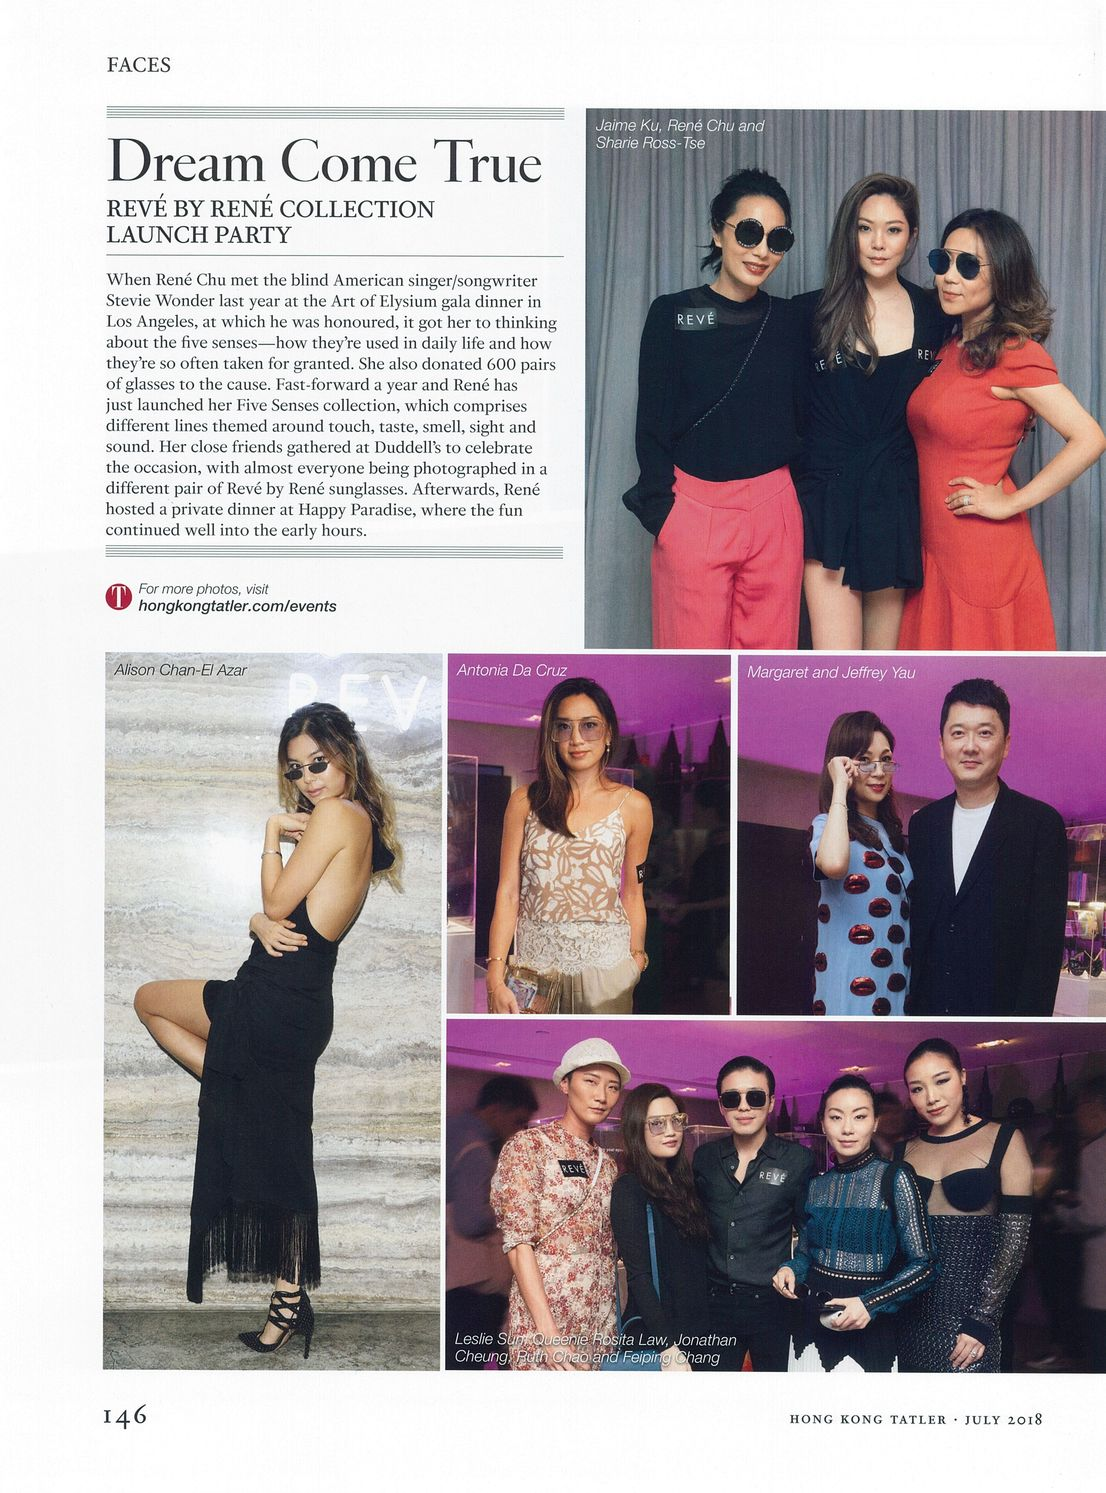 REVE by RENE launch party featured in Hong Kong Tatler